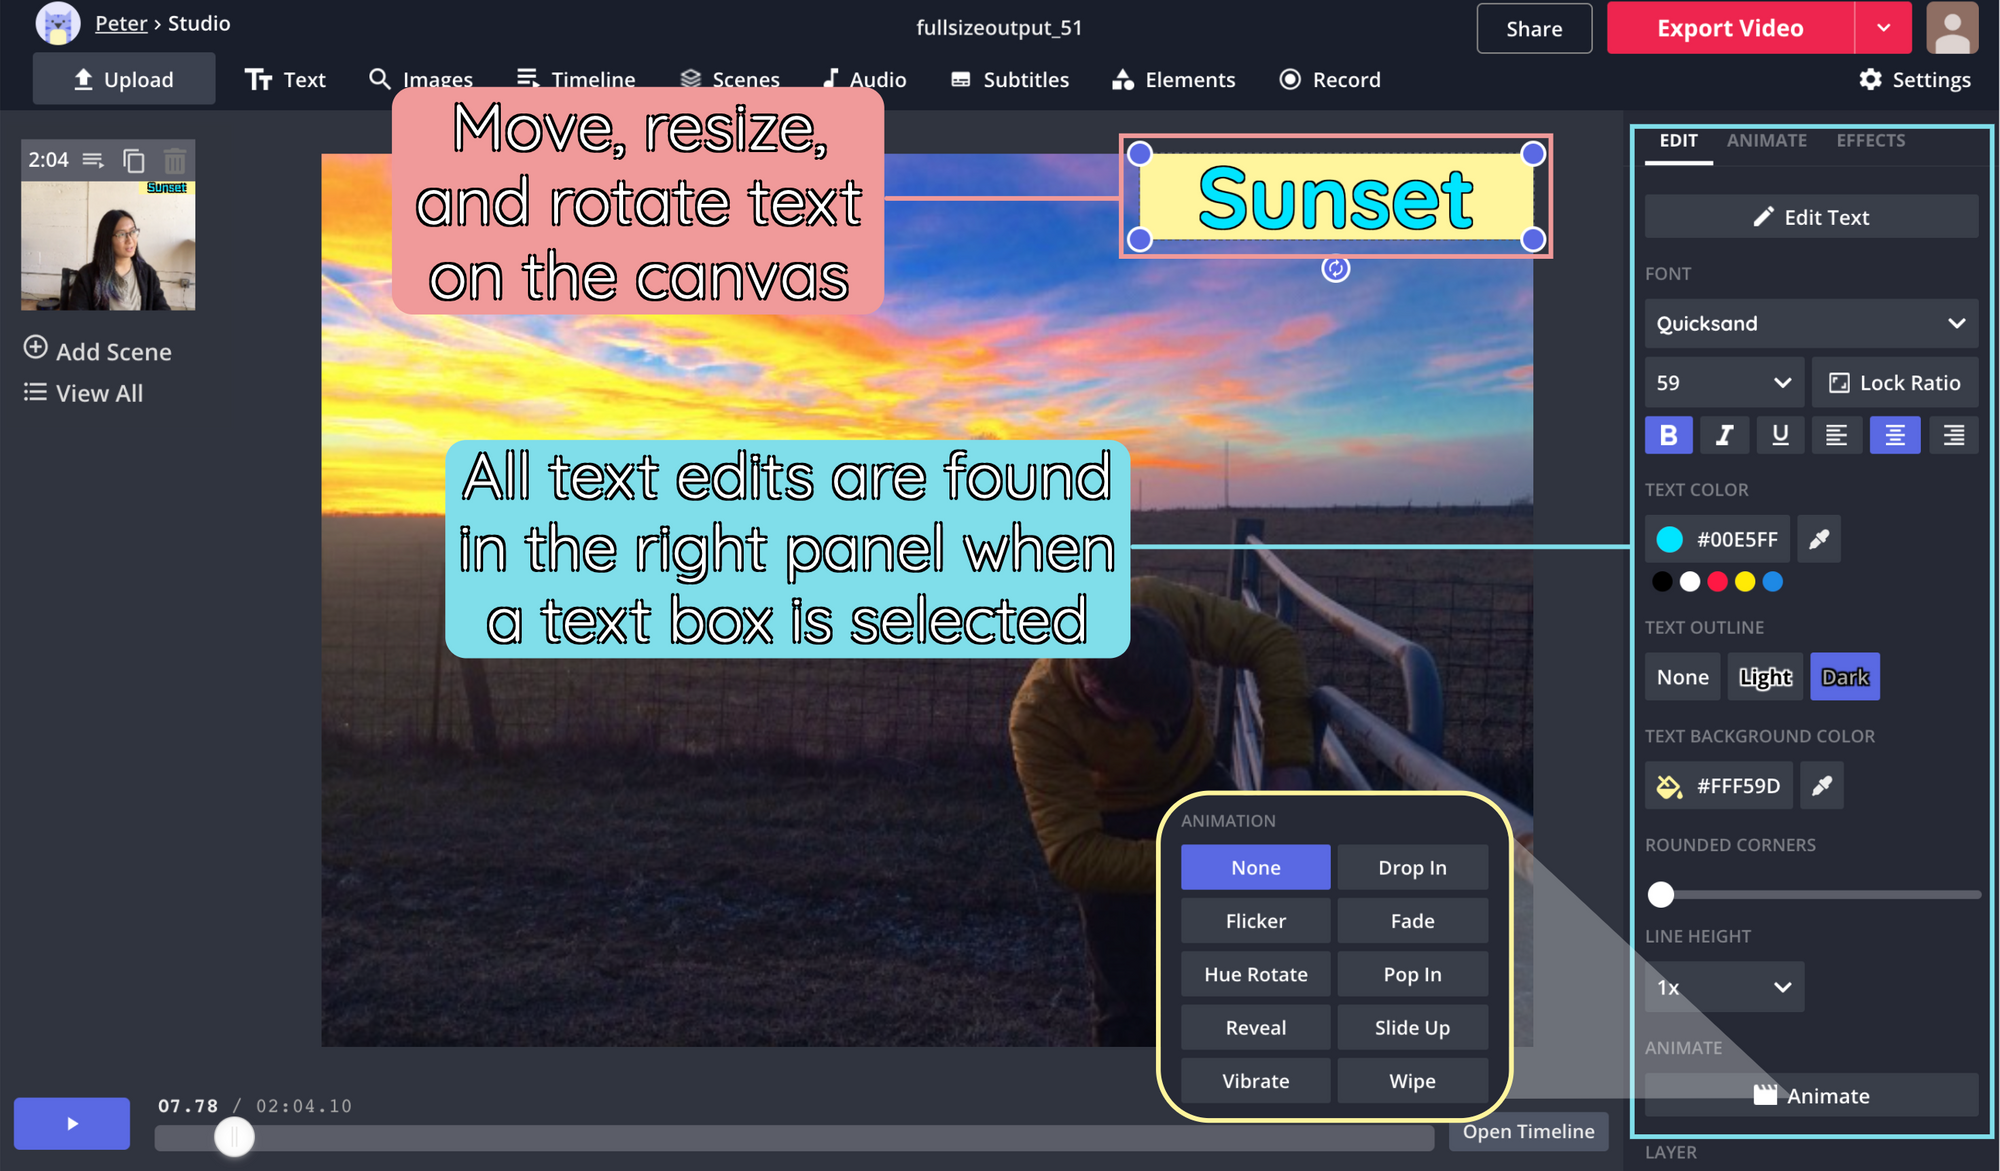 A screenshot showing layer editing options in the Kapwing Studio.